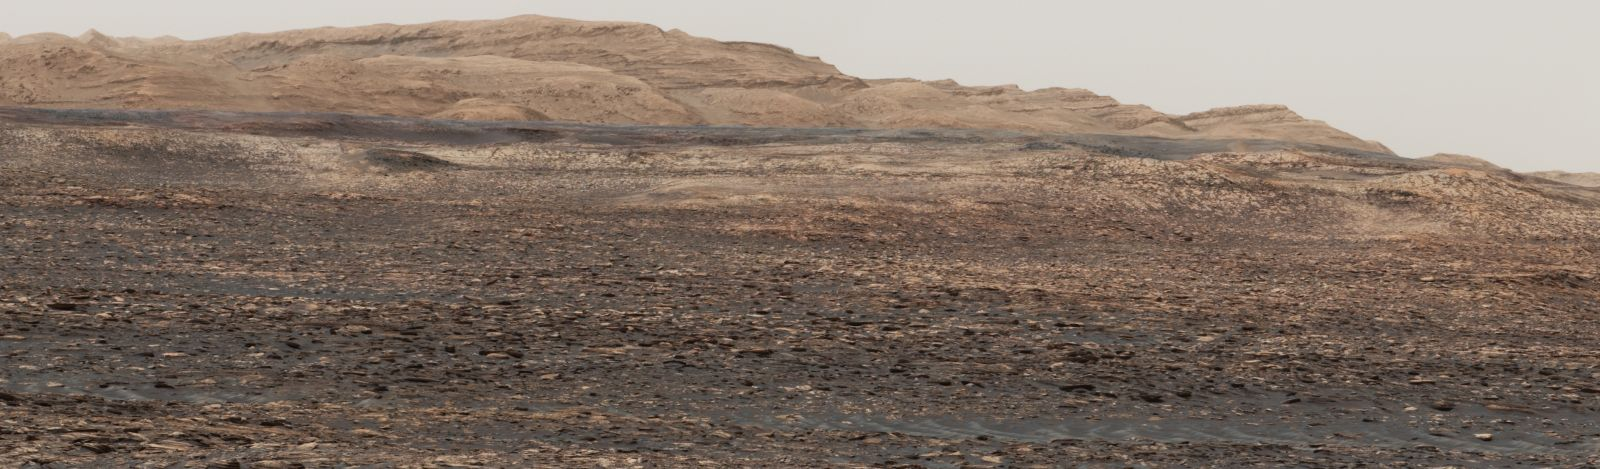 Curiosity's target: Vera Rubin Ridge. NASA/JPL/MSSS image posted on SpaceFlight Insider